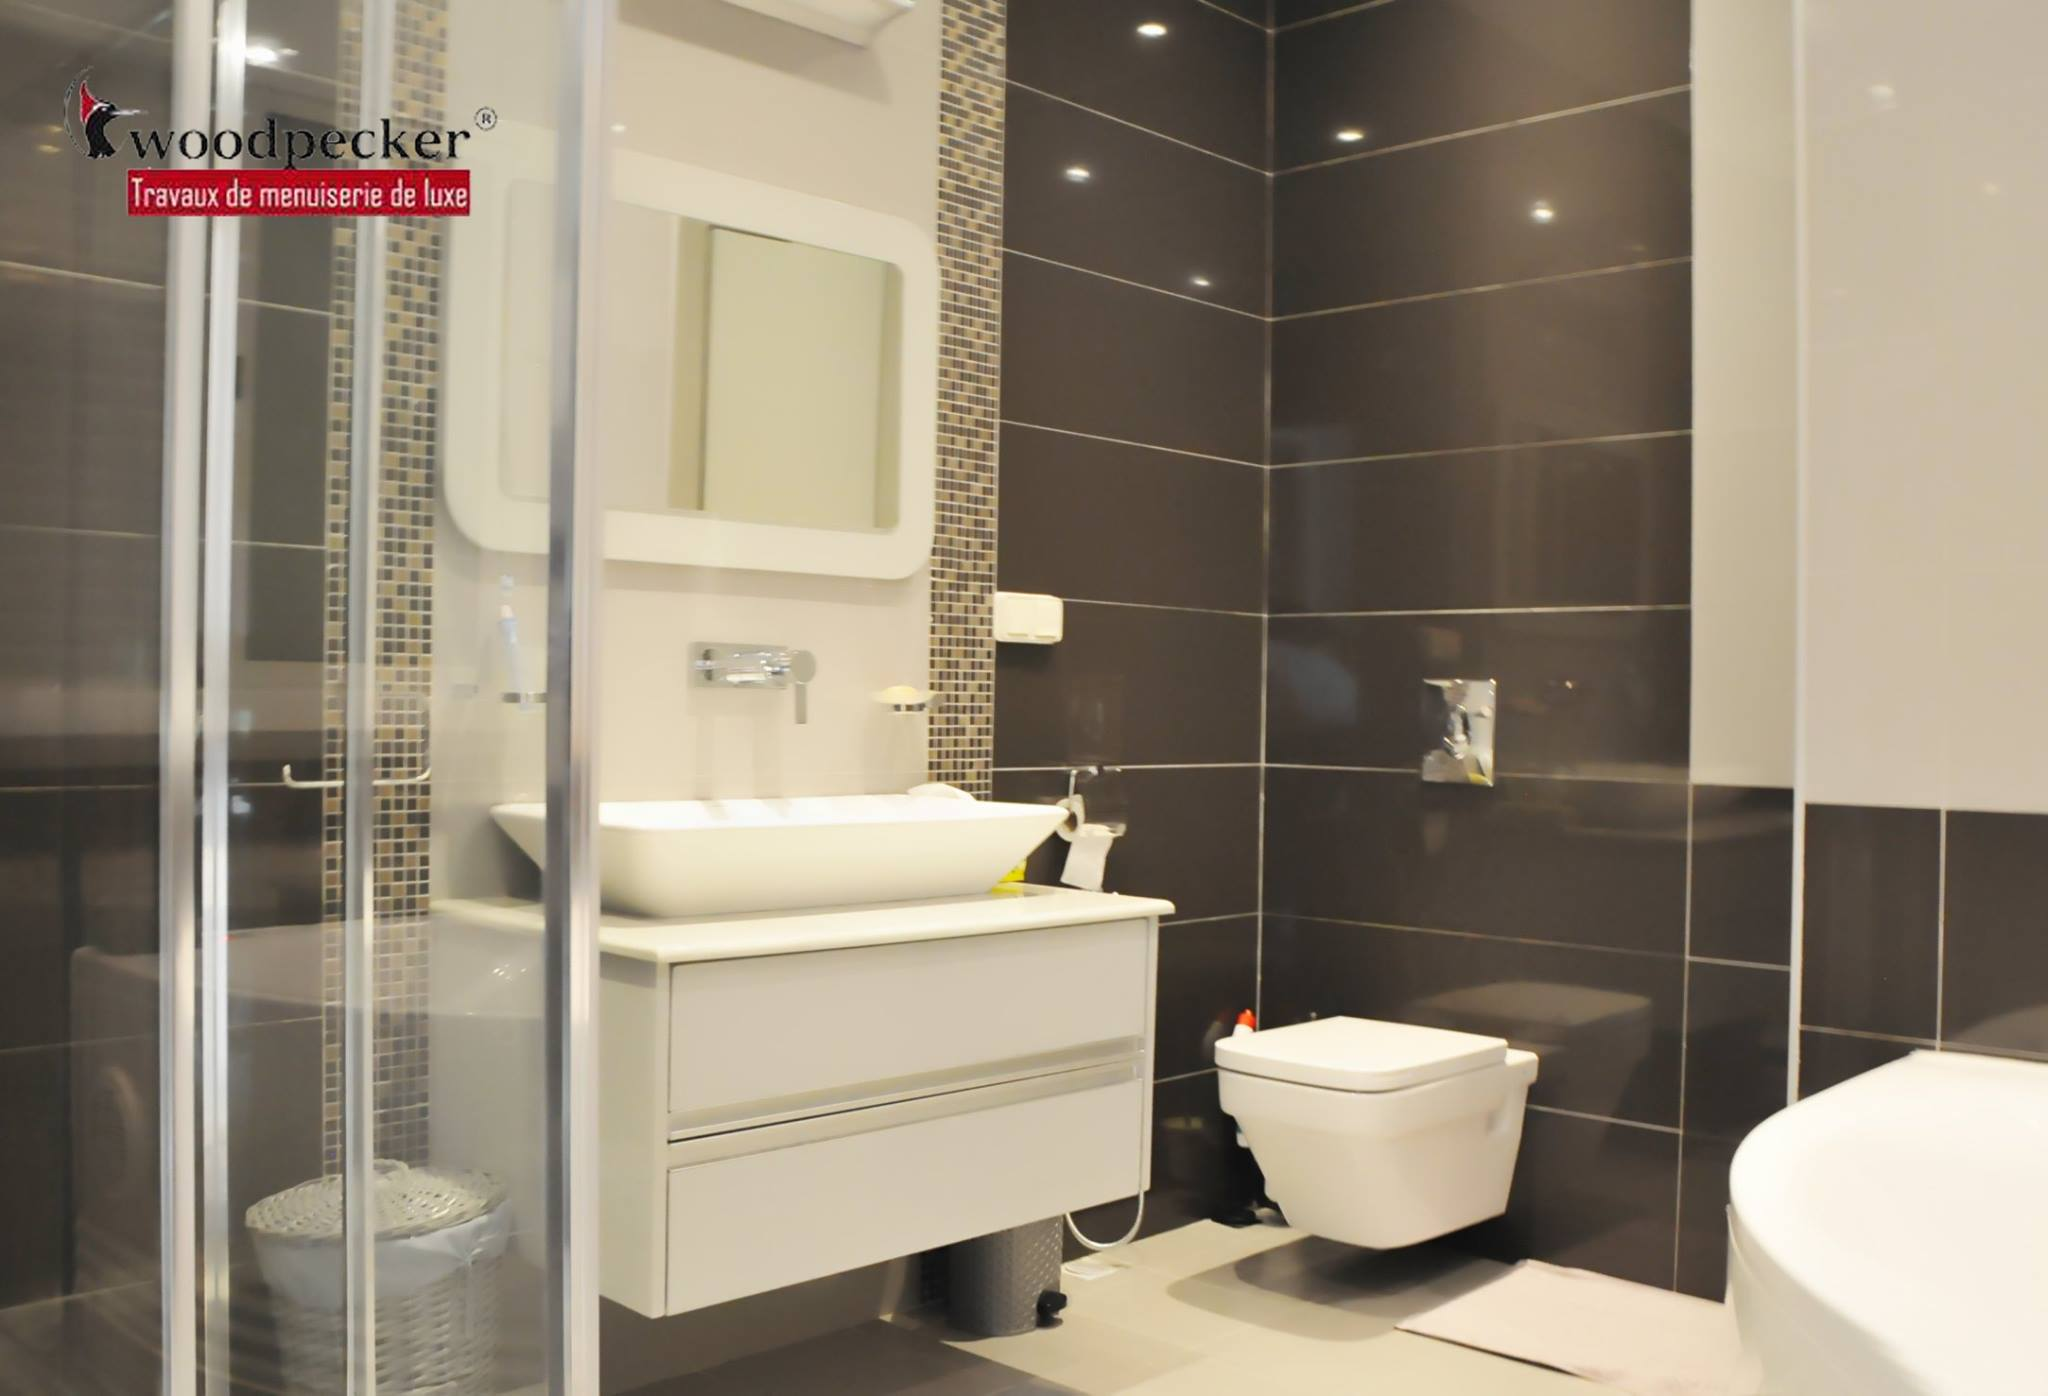 faience salle de bain moderne tunisie avec des id es int ressantes pour la. Black Bedroom Furniture Sets. Home Design Ideas